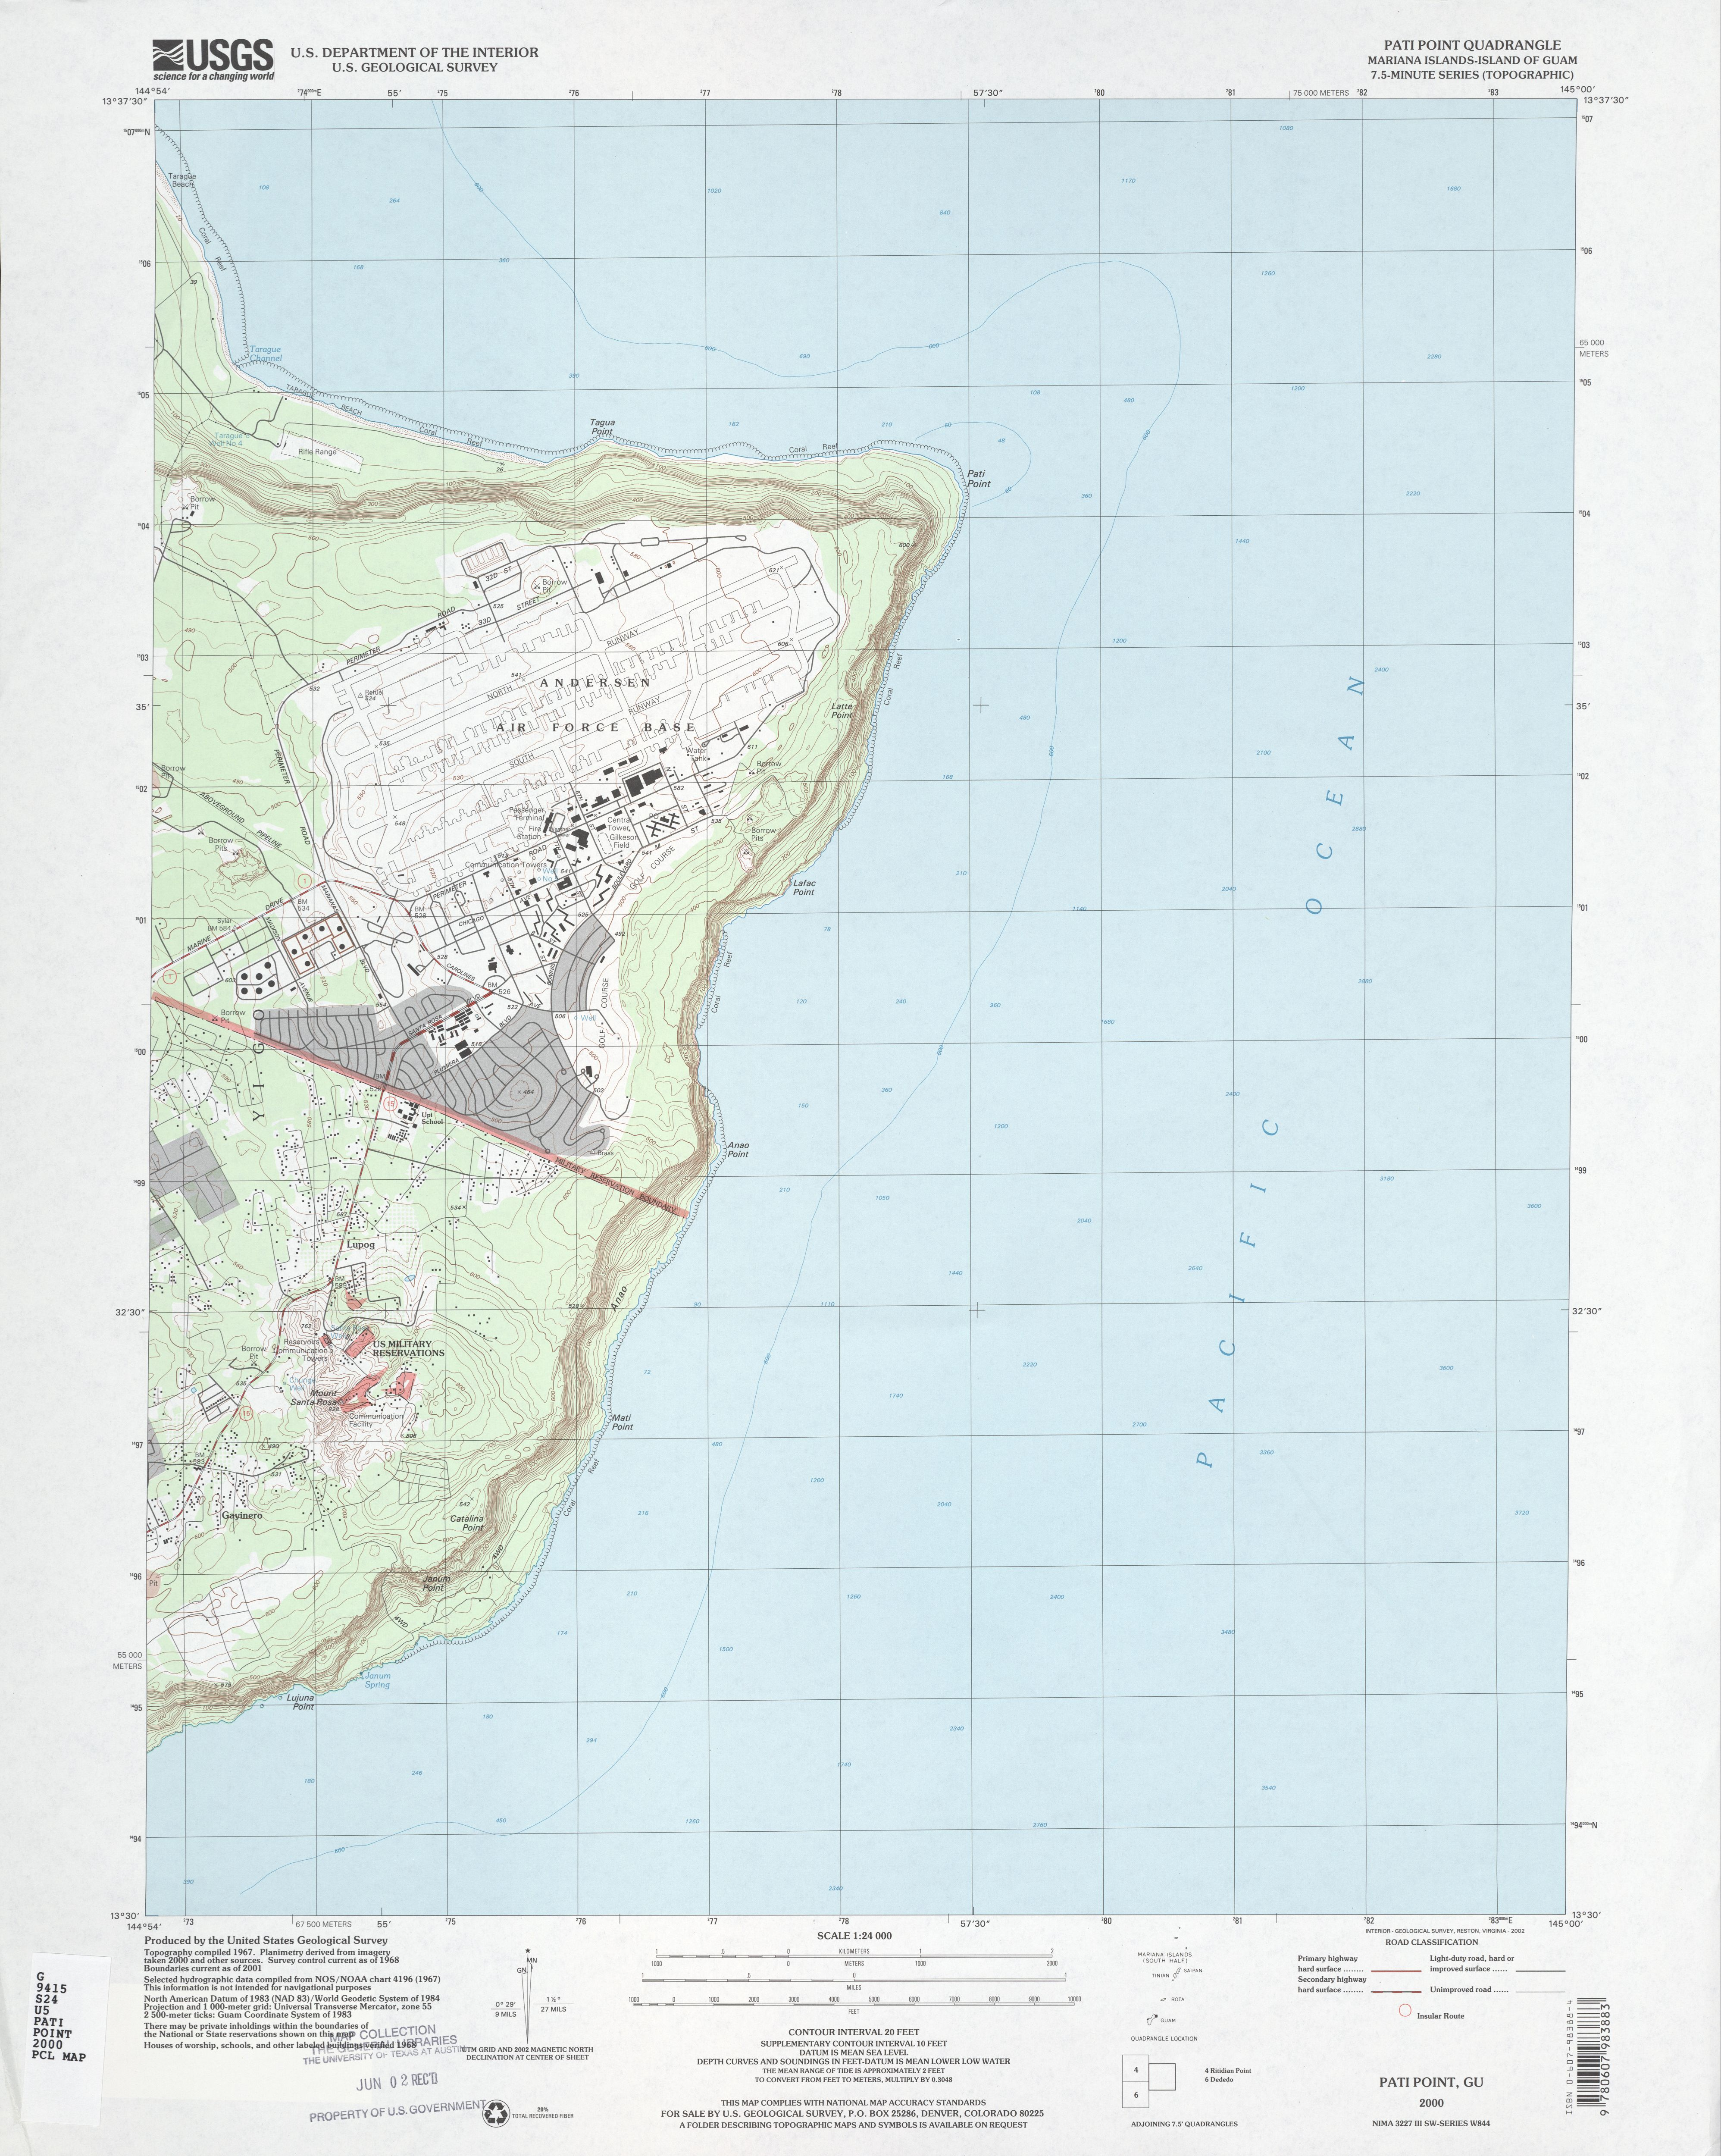 Guam maps perry castaeda map collection ut library online topographic maps gumiabroncs Choice Image